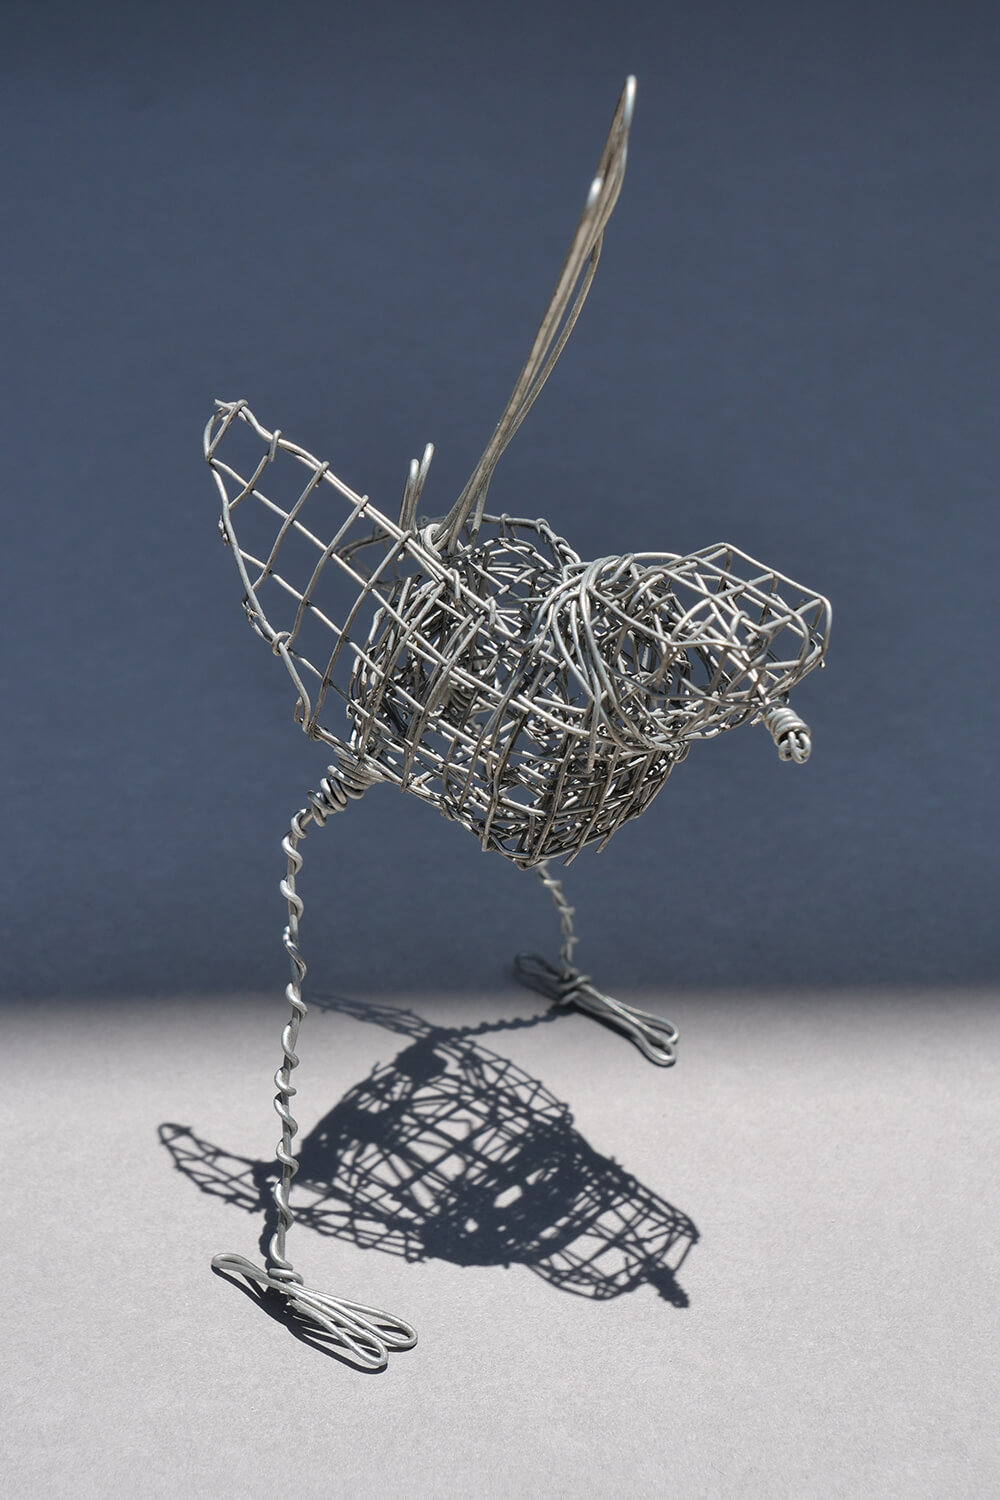 1 Wren. 1 wire handmade wren approximately 13 cm in height and 7 cm wide.